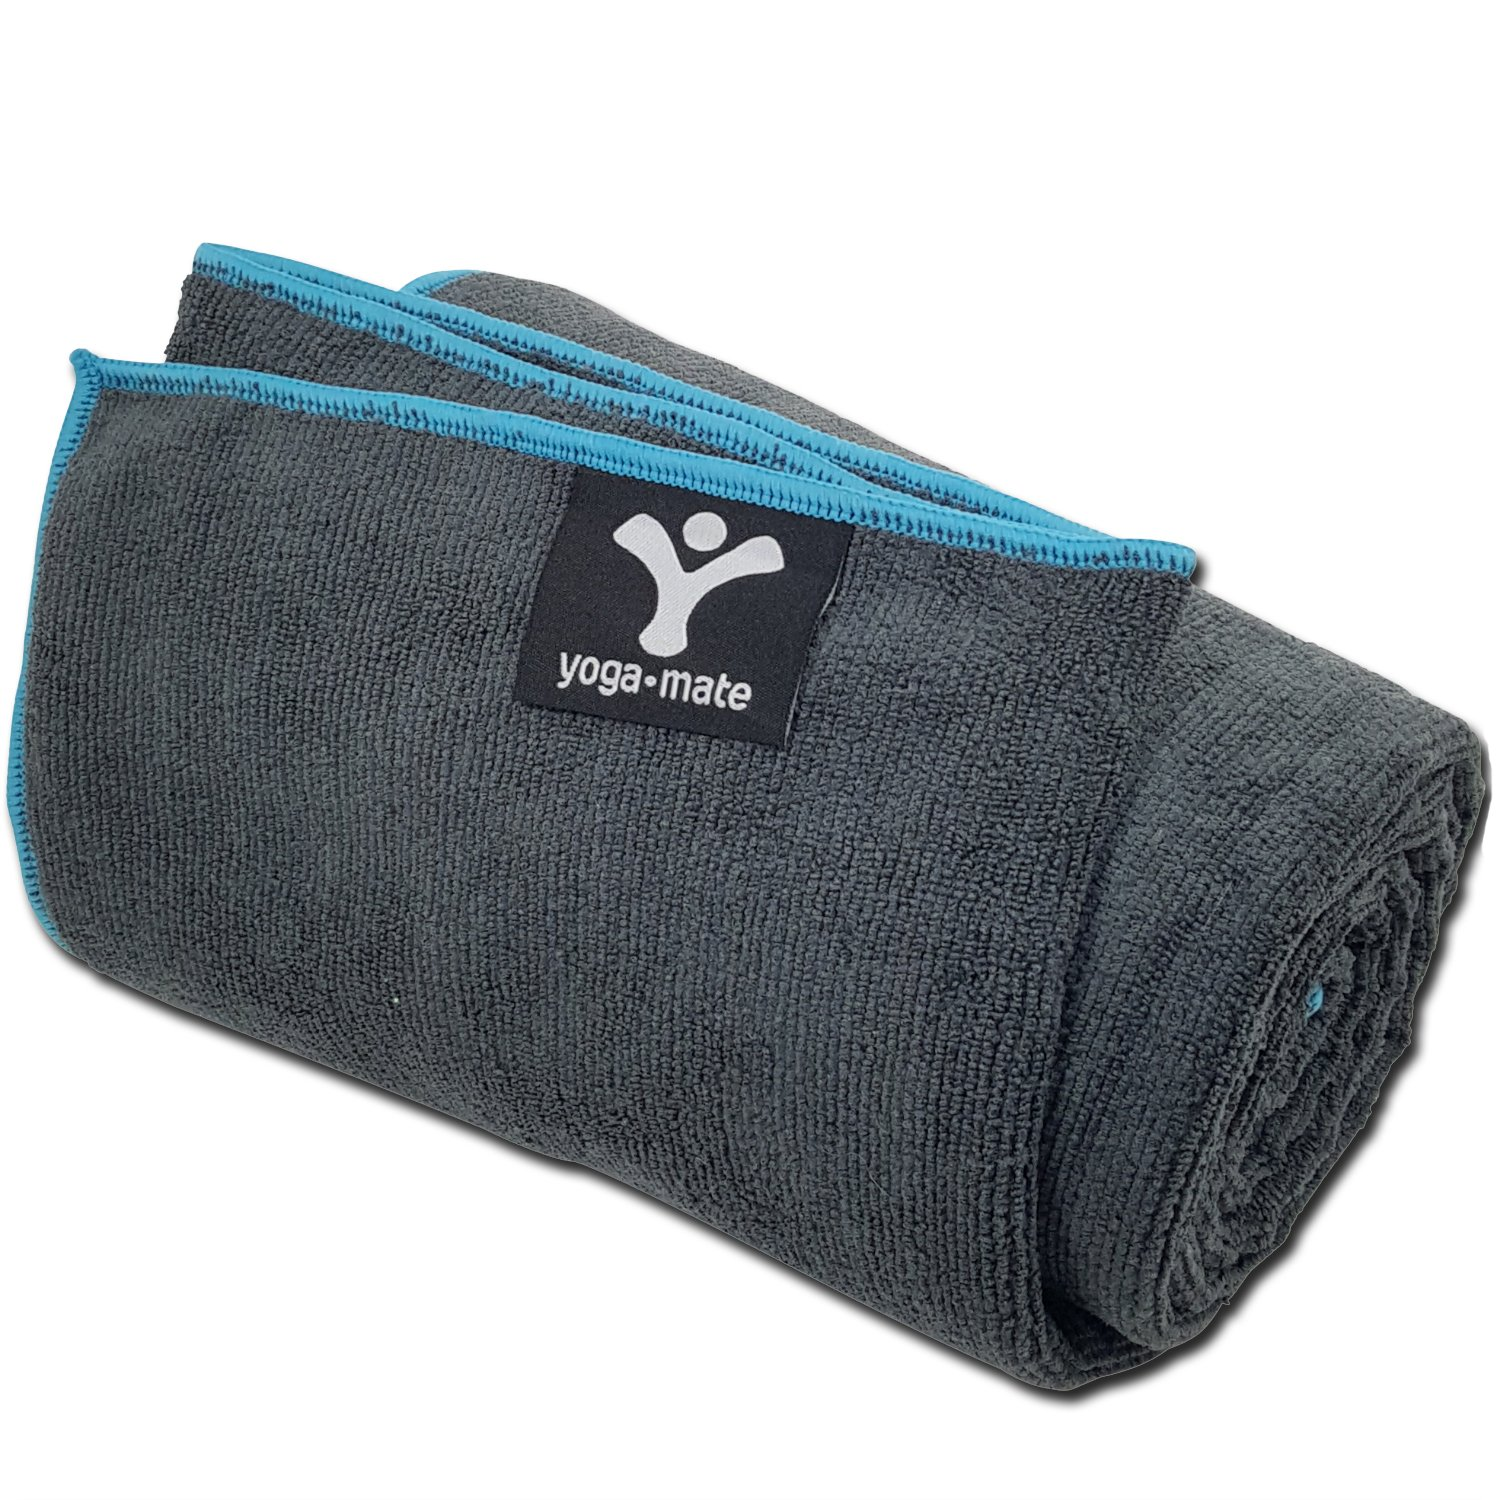 best yoga towel to buy